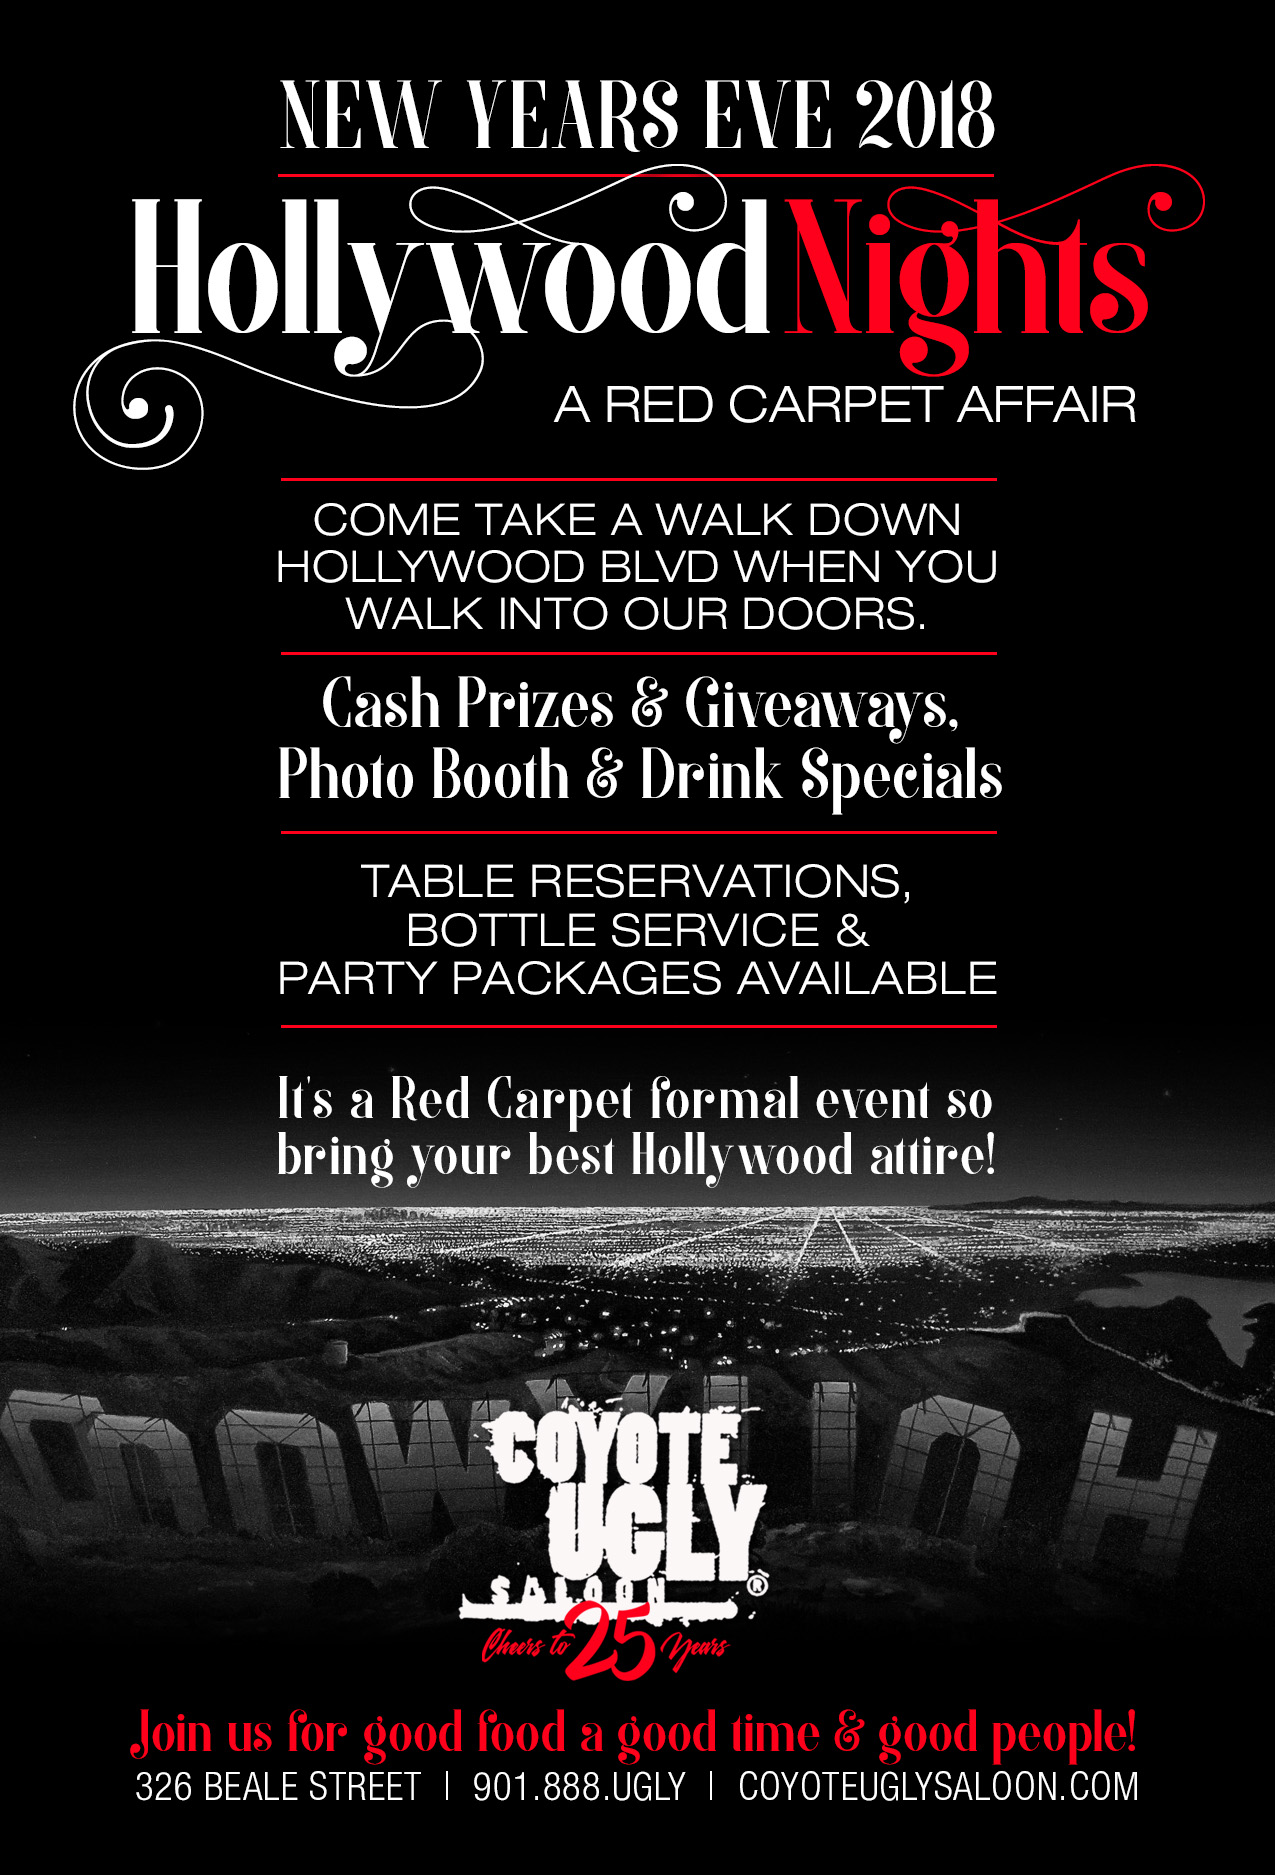 New Year's Eve – Hollywood Nights in Memphis on December 31, 2018